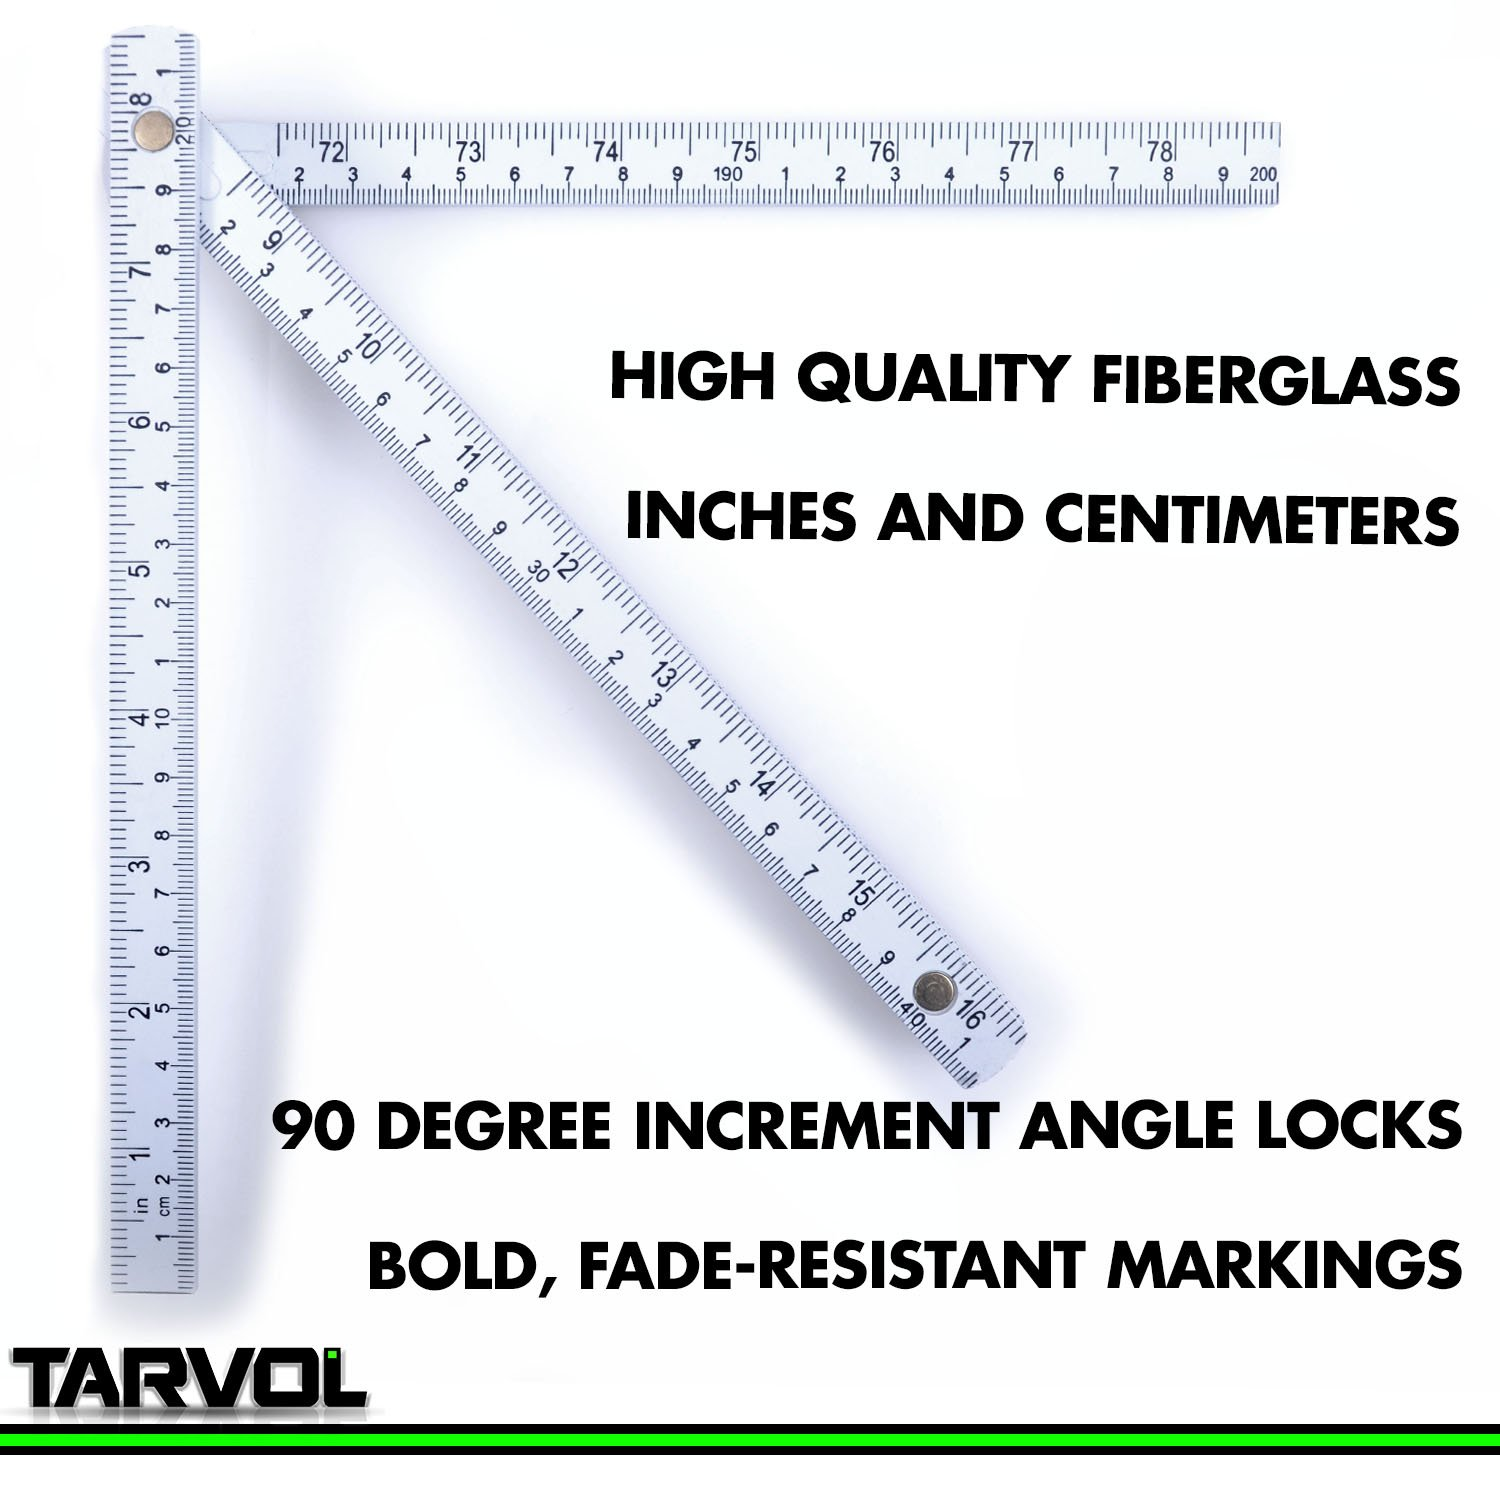 Folding carpenters ruler 65 foot foldable design lightweight folding carpenters ruler 65 foot foldable design lightweight and compact measuring stick in inches in centimeter cm slide fold up design buycottarizona Image collections